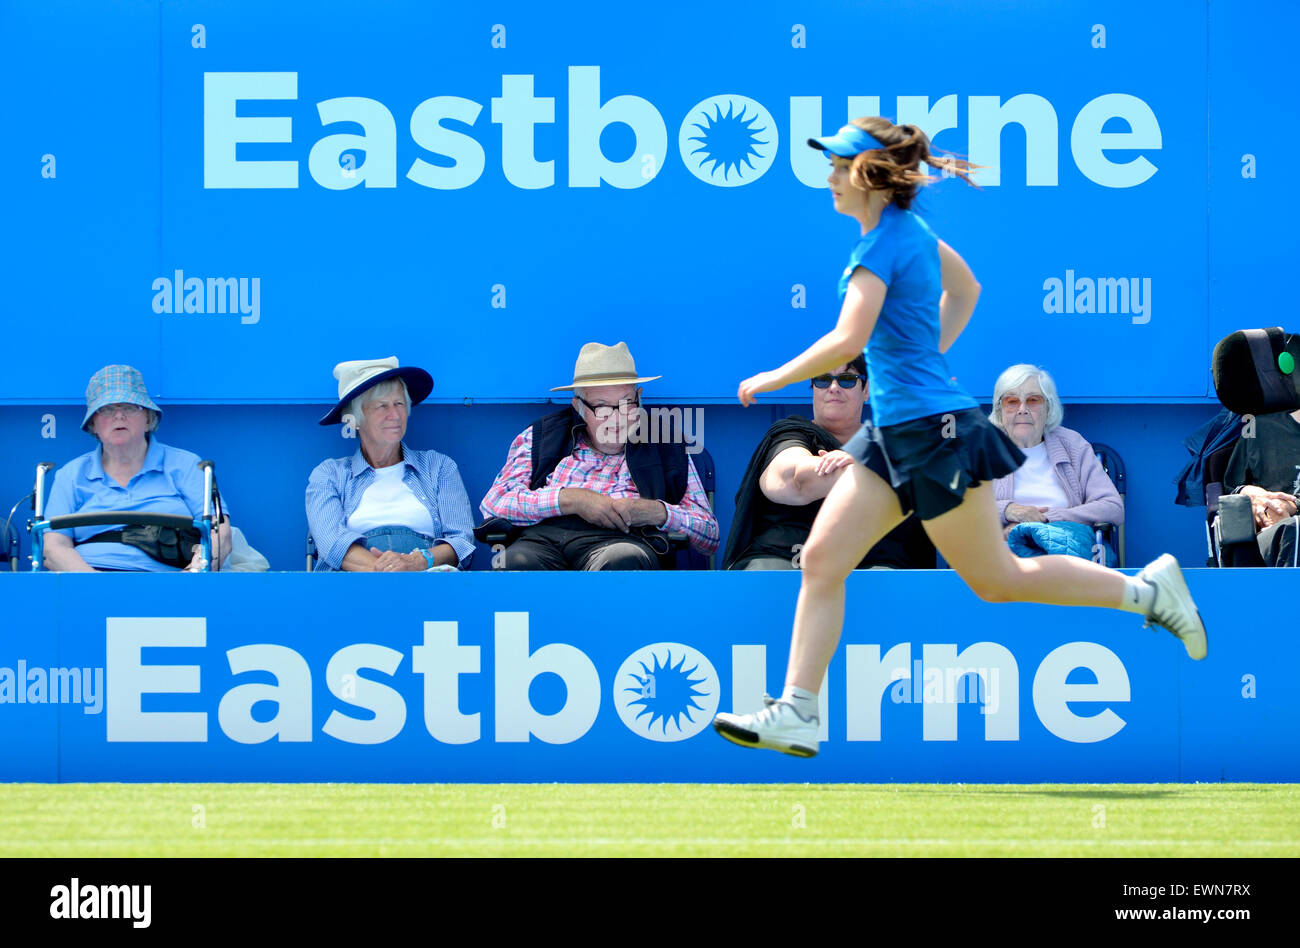 Personnes âgées les spectateurs et une balle en fille sur le court central à l'Aegon International Photo Stock